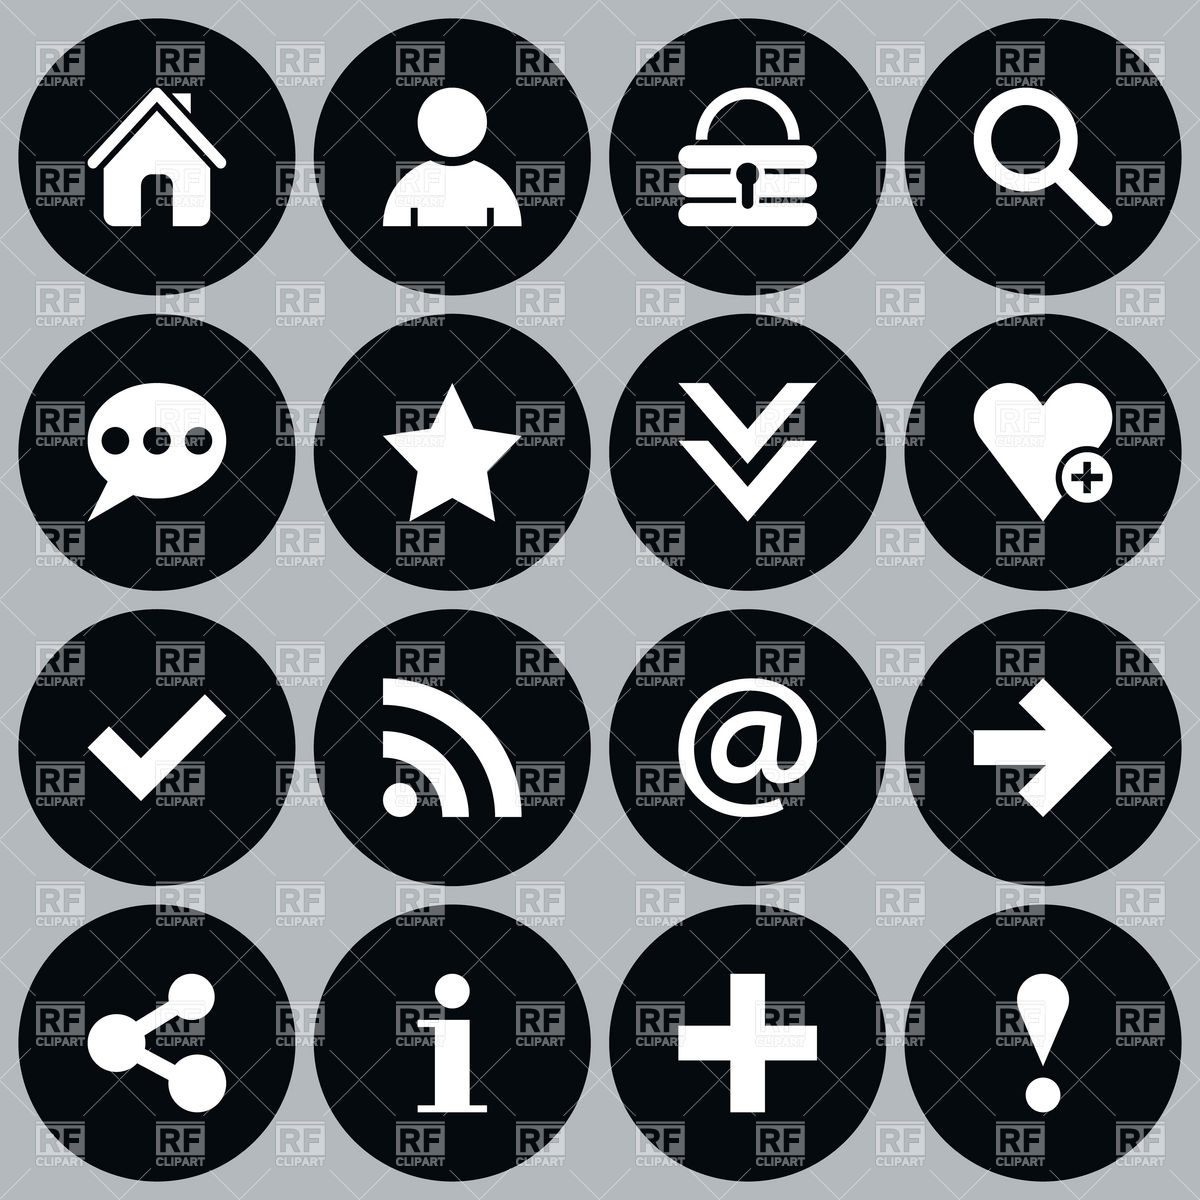 1200x1200 Simple Black Website Icons Round Shape Vector Image Vector